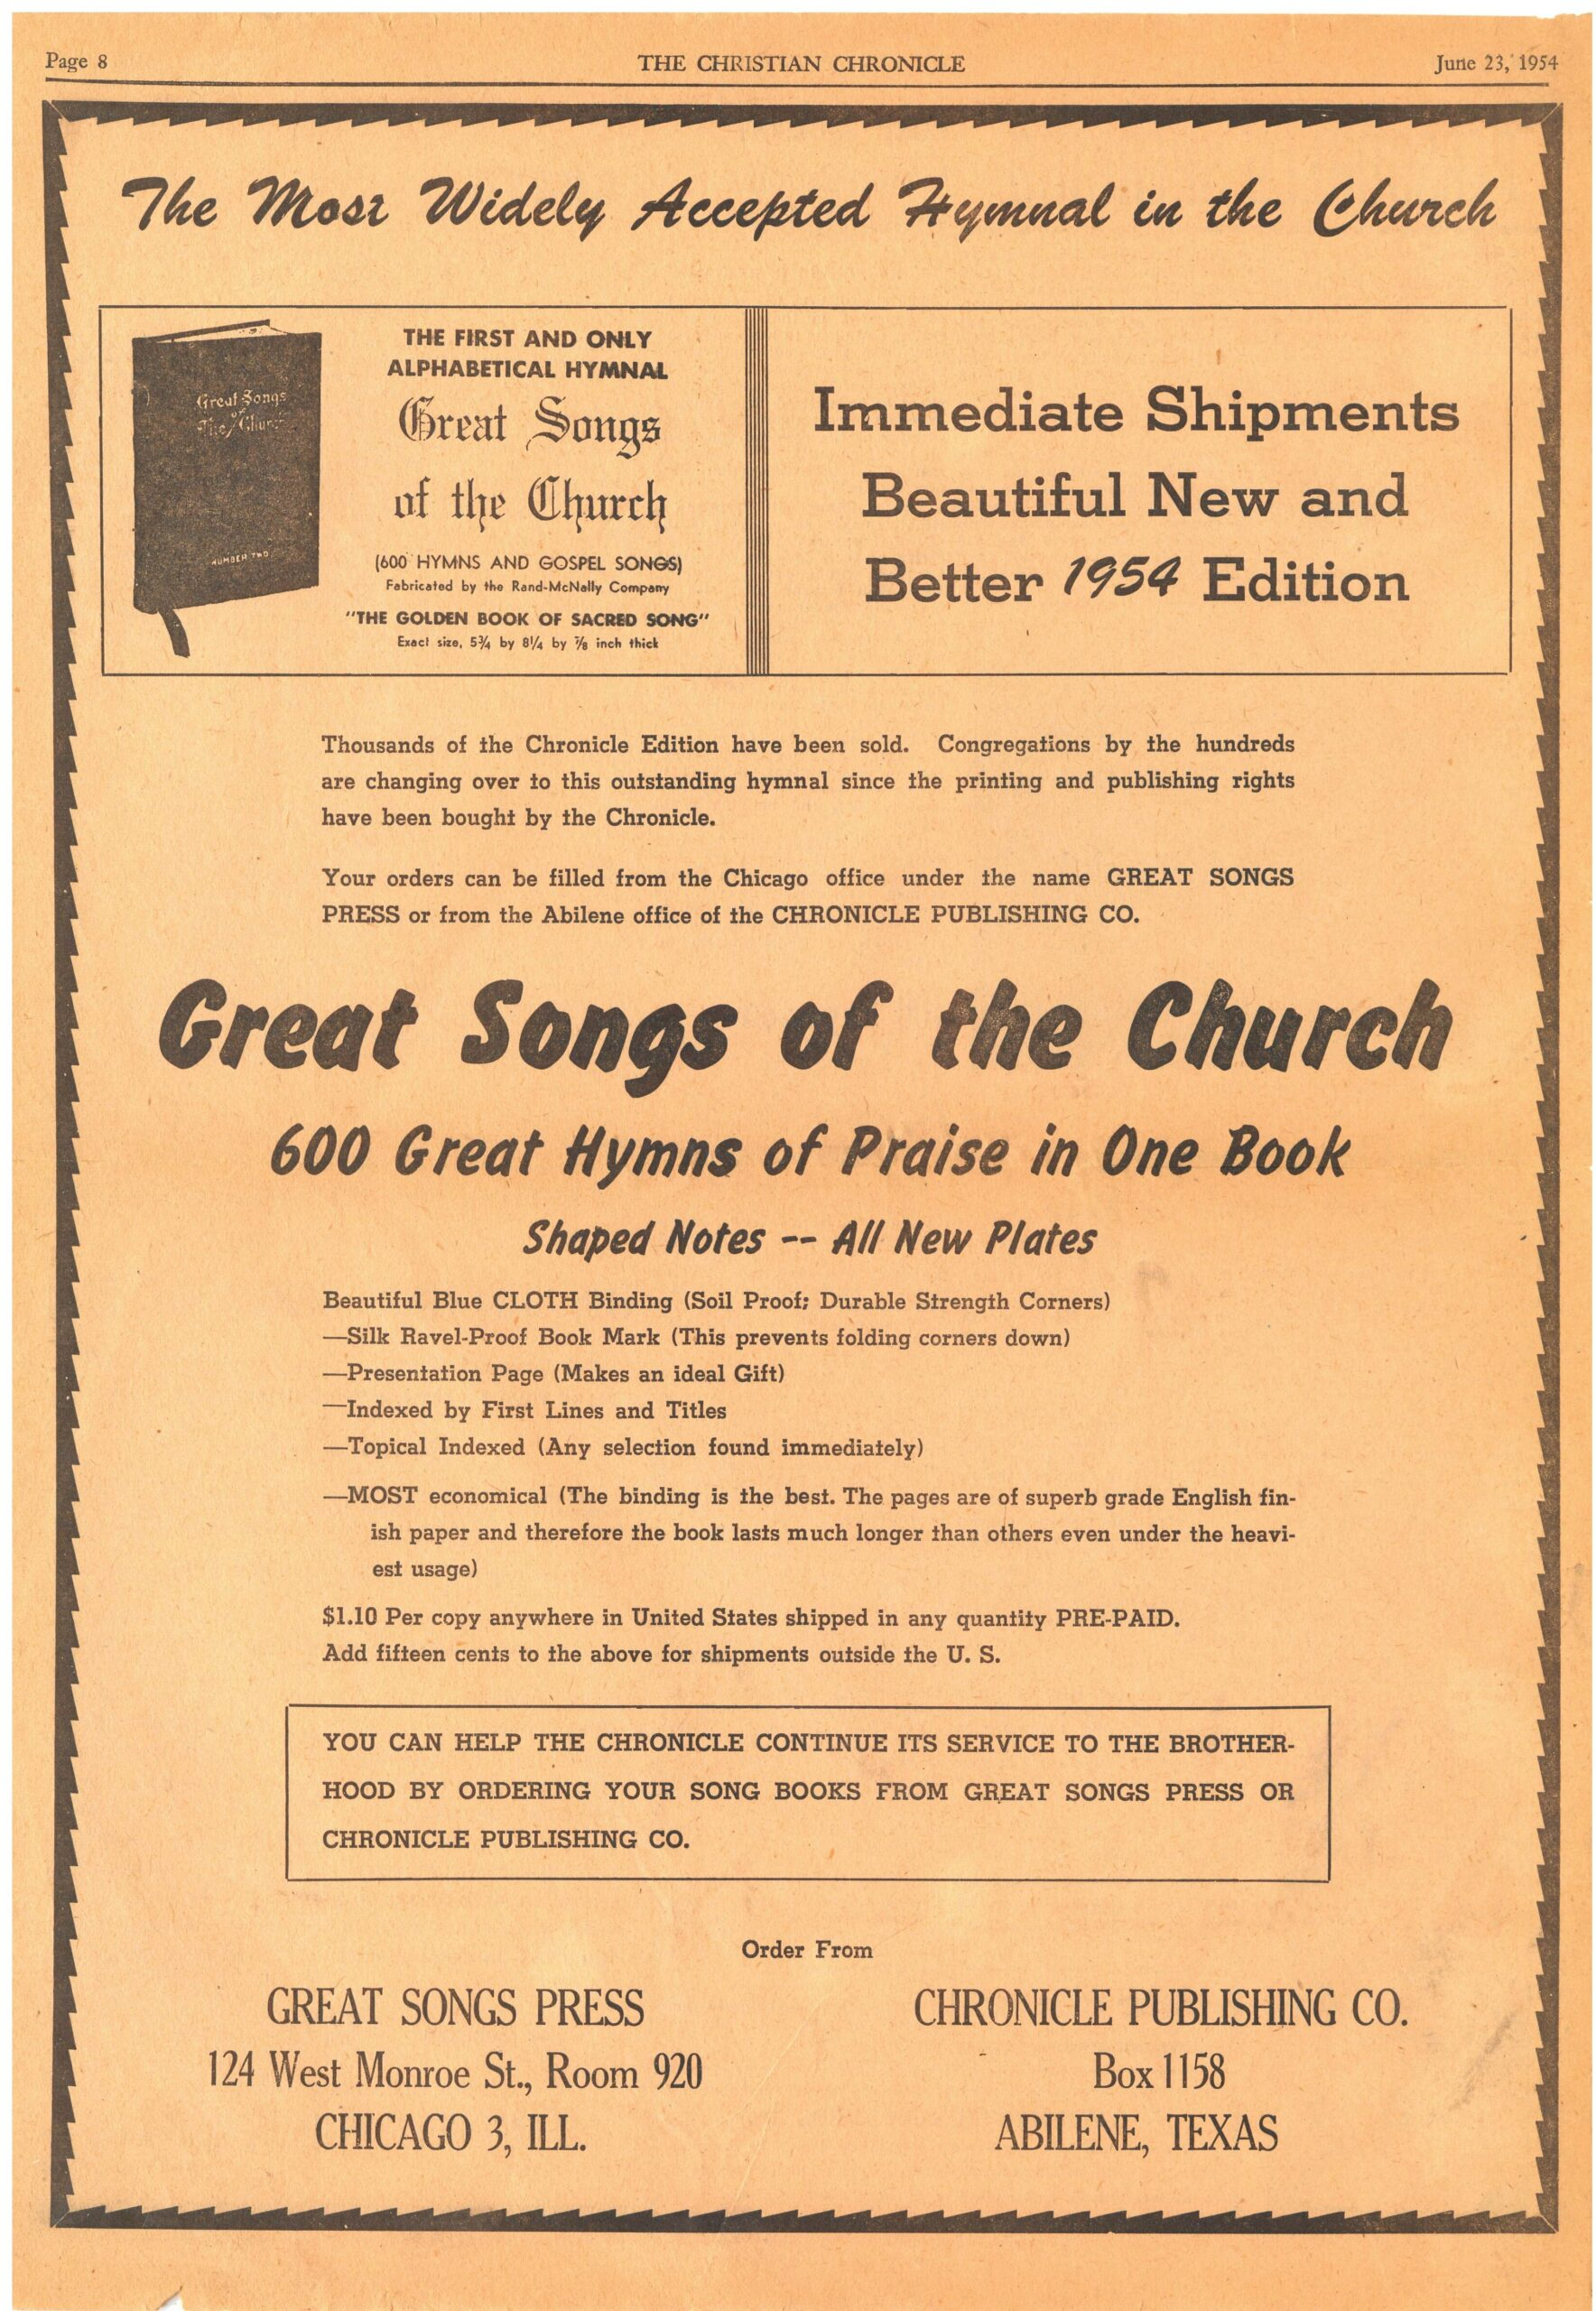 Advertisement, 'The Most Widely Accepted Hymnal in the Church,' Christian Chronicle, June 23, 1954.